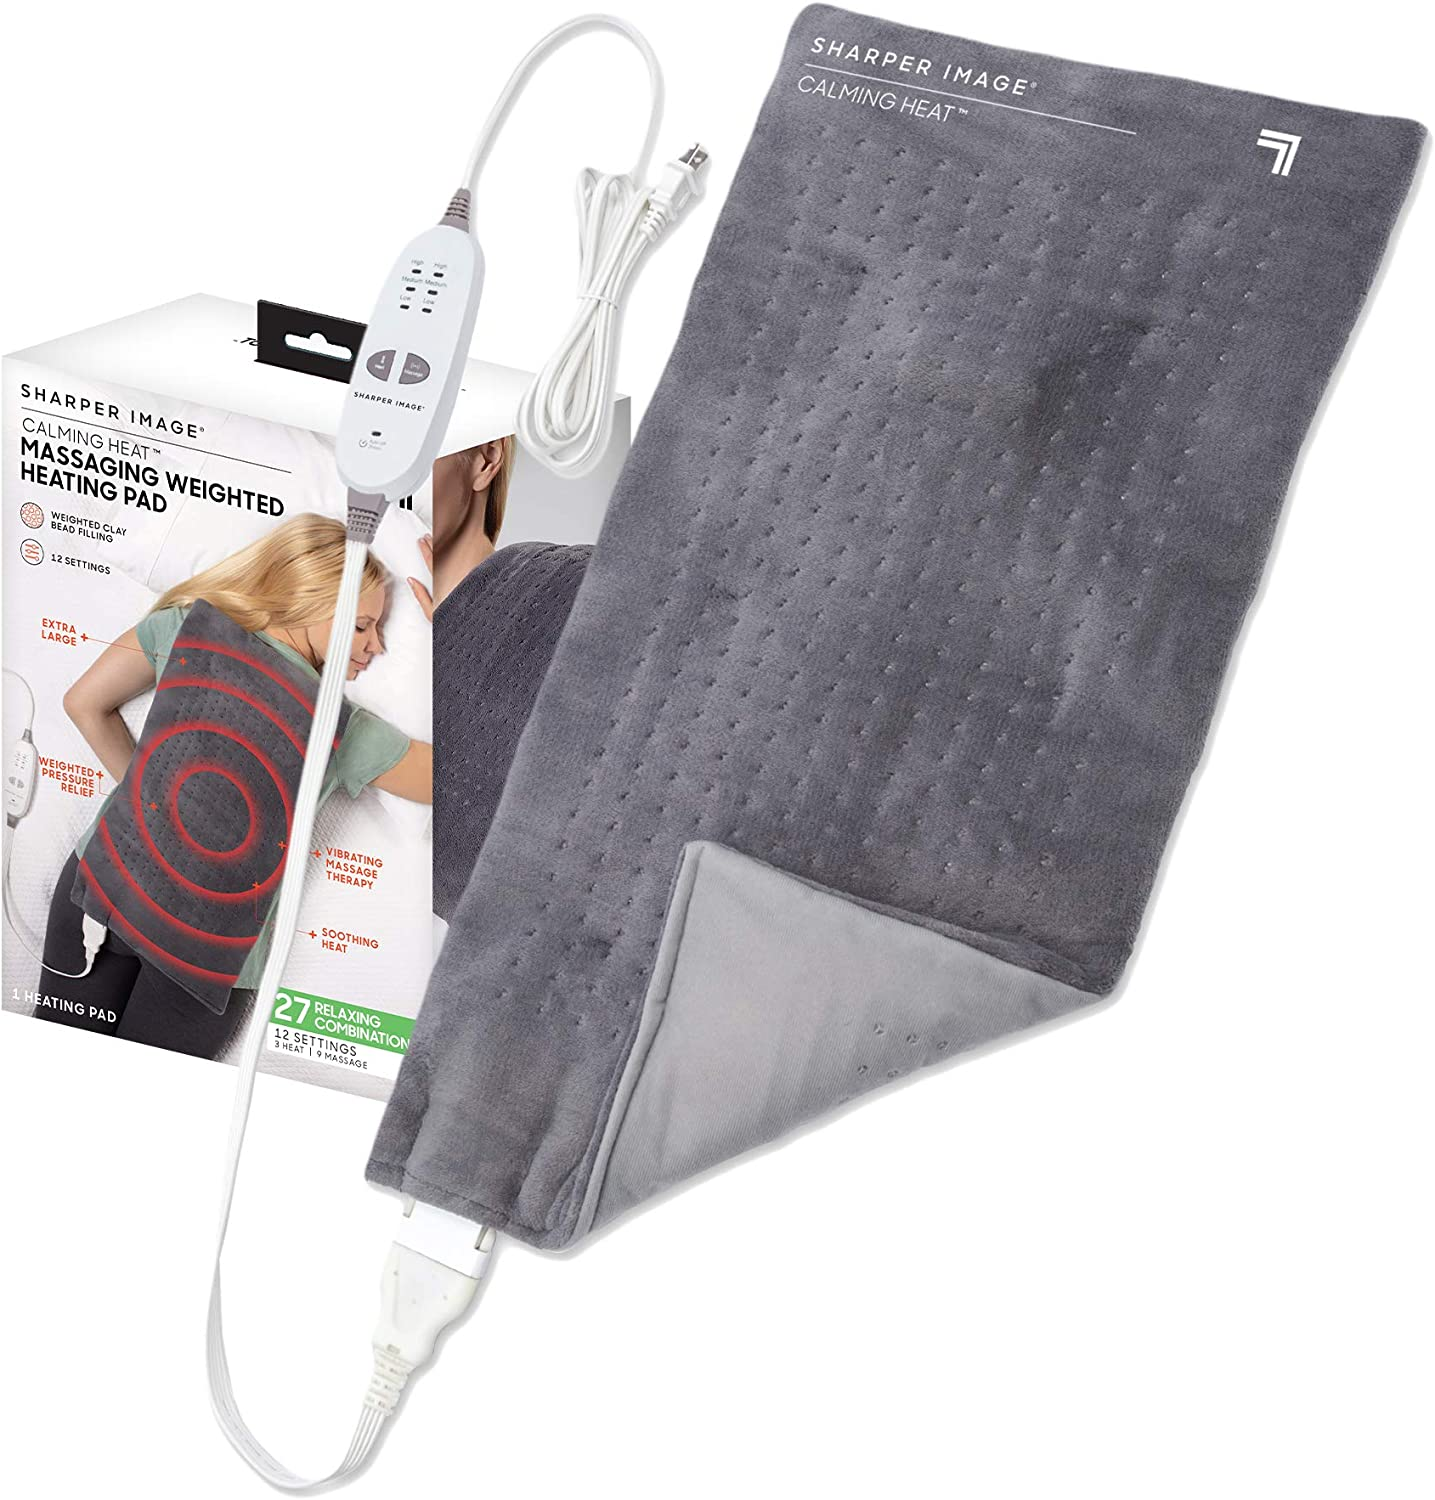 "Calming Heat Massaging Weighted Heating Pad by Shaper Image- Electric Heating Pad with Massaging Vibrations, Auto-Off,12 Settings- 3 Heat, 9 Massage- 27 Relaxing Combinations, 12"" x 24"", 4 lbs: Health & Personal Care"